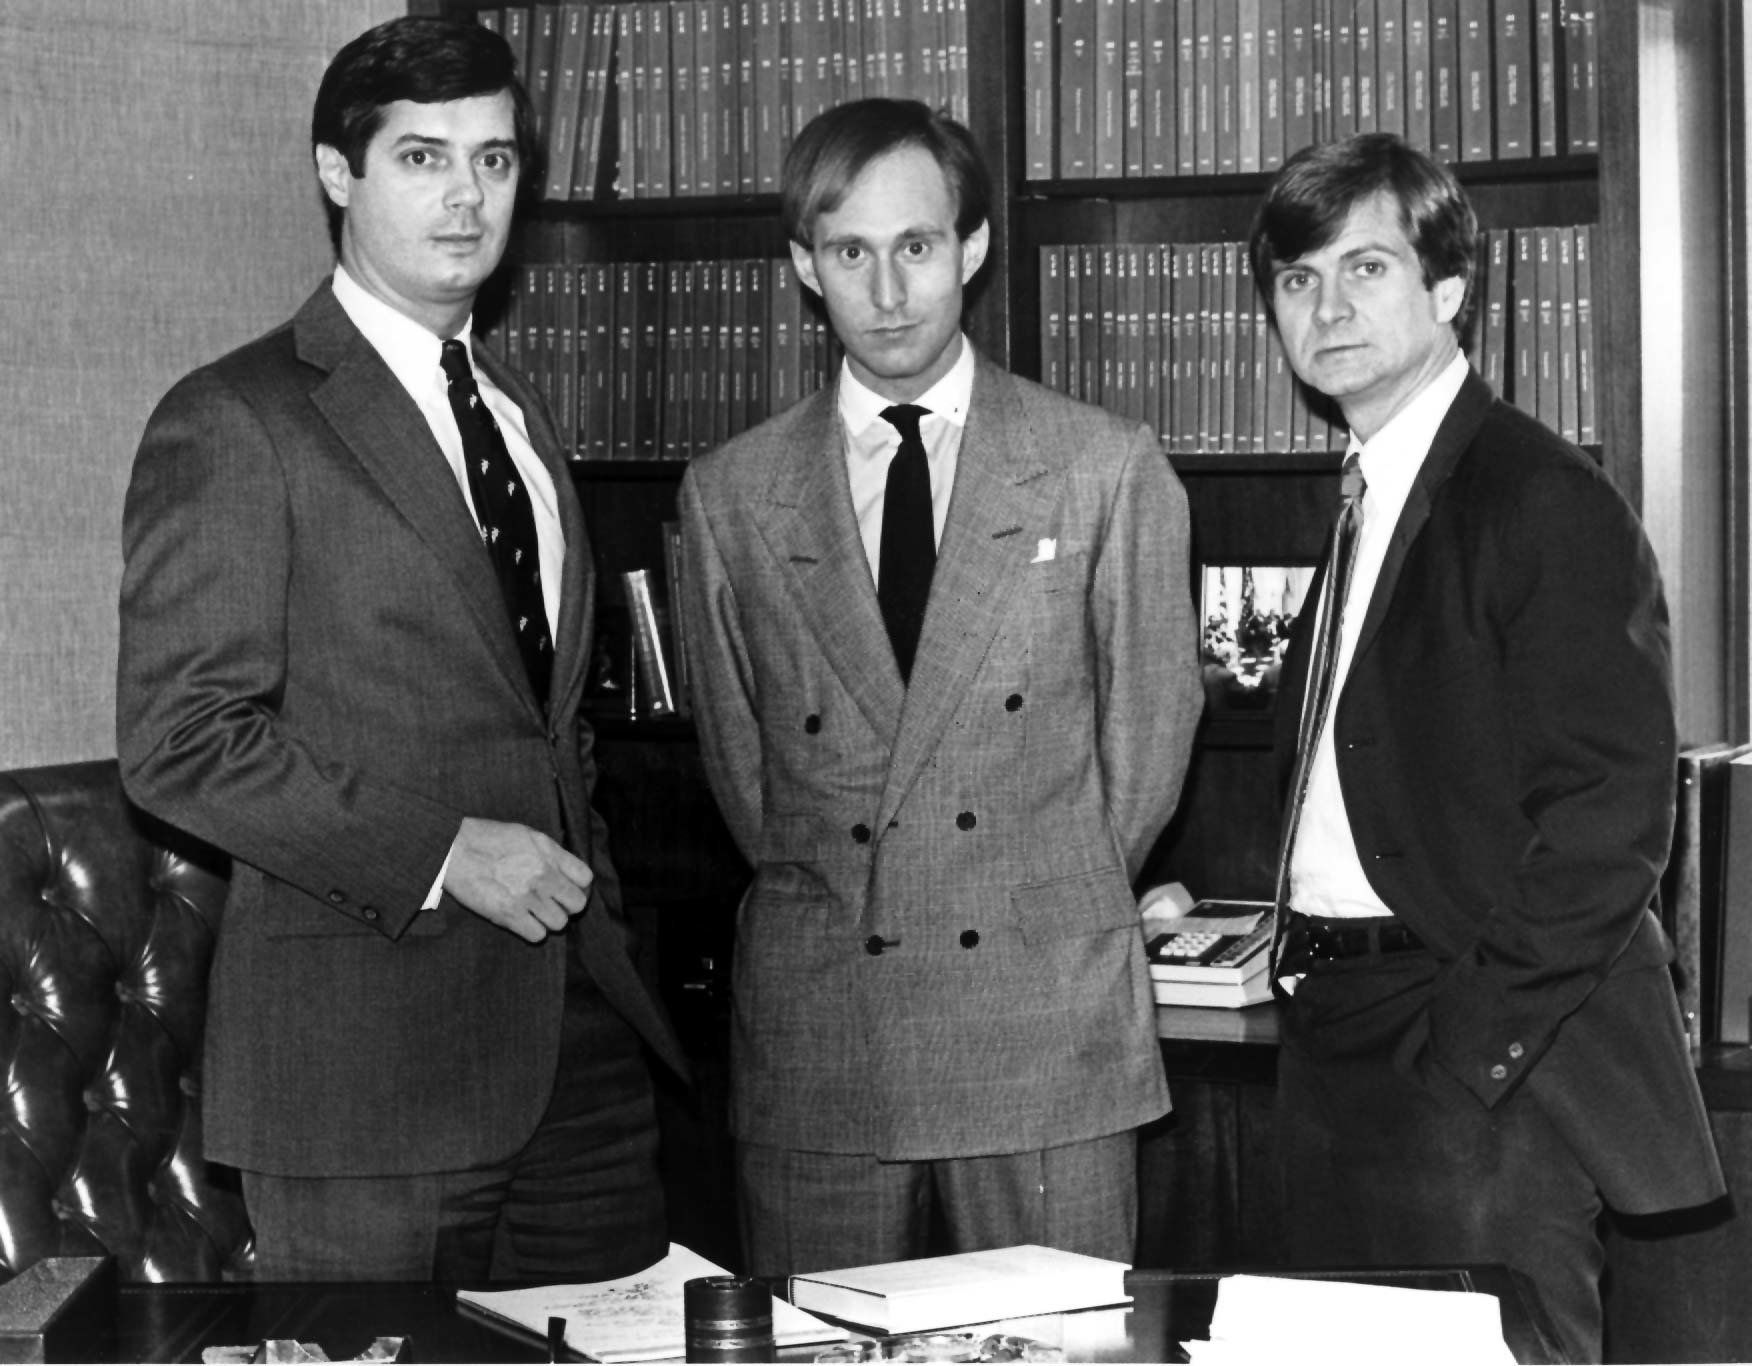 Donald Trump's conventionadviser, Paul Manafort, his longtime adviser Roger Stone, and Reagan aide Lee Atwater all star